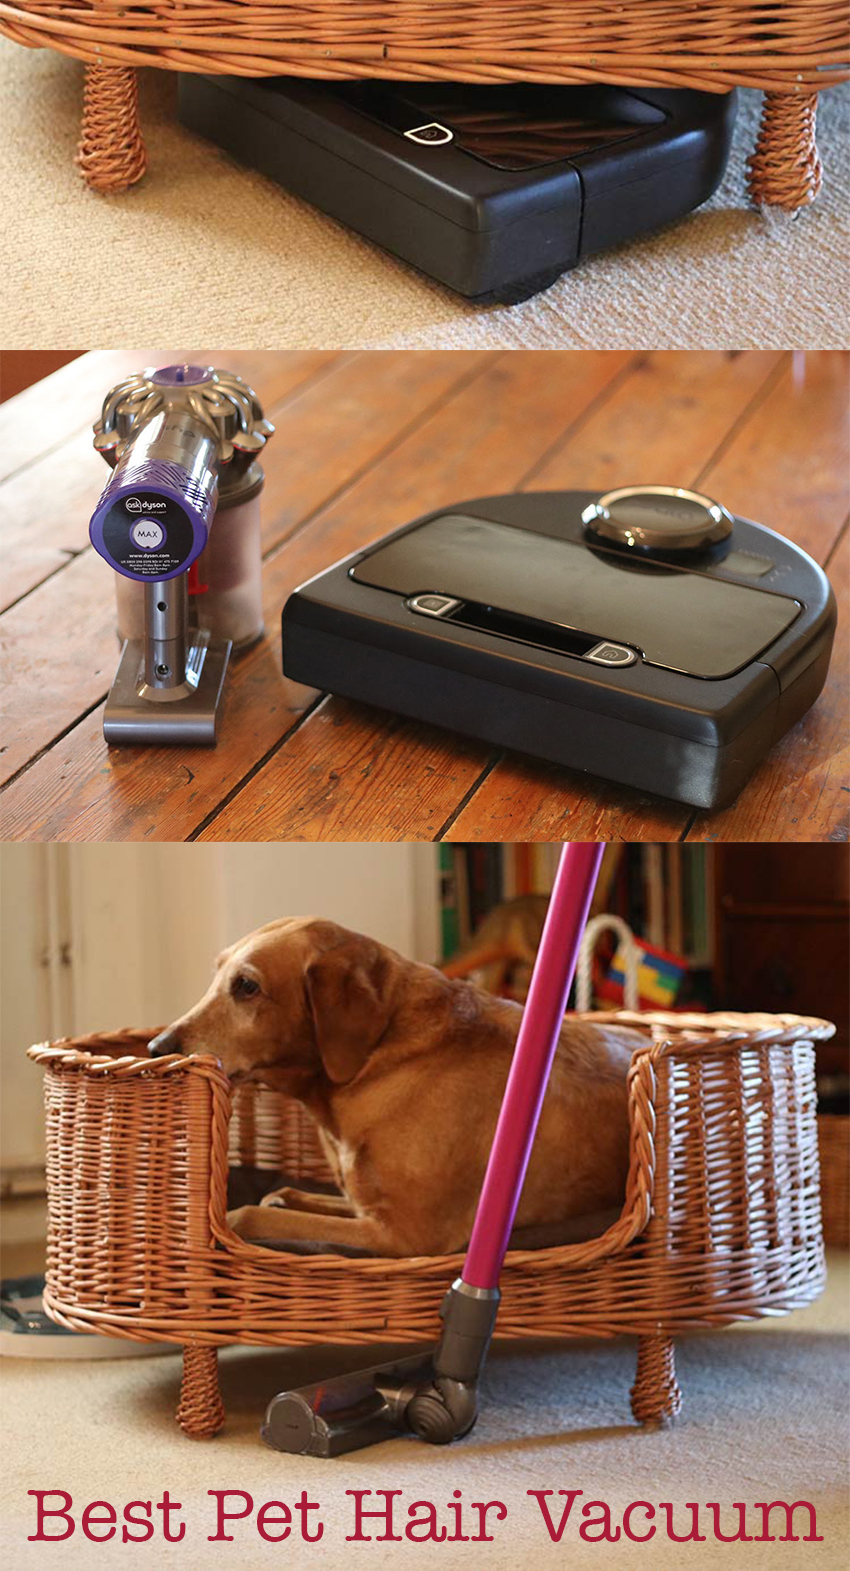 Pippa shares her personal tools and techniques in this best vacuum for pet hair review